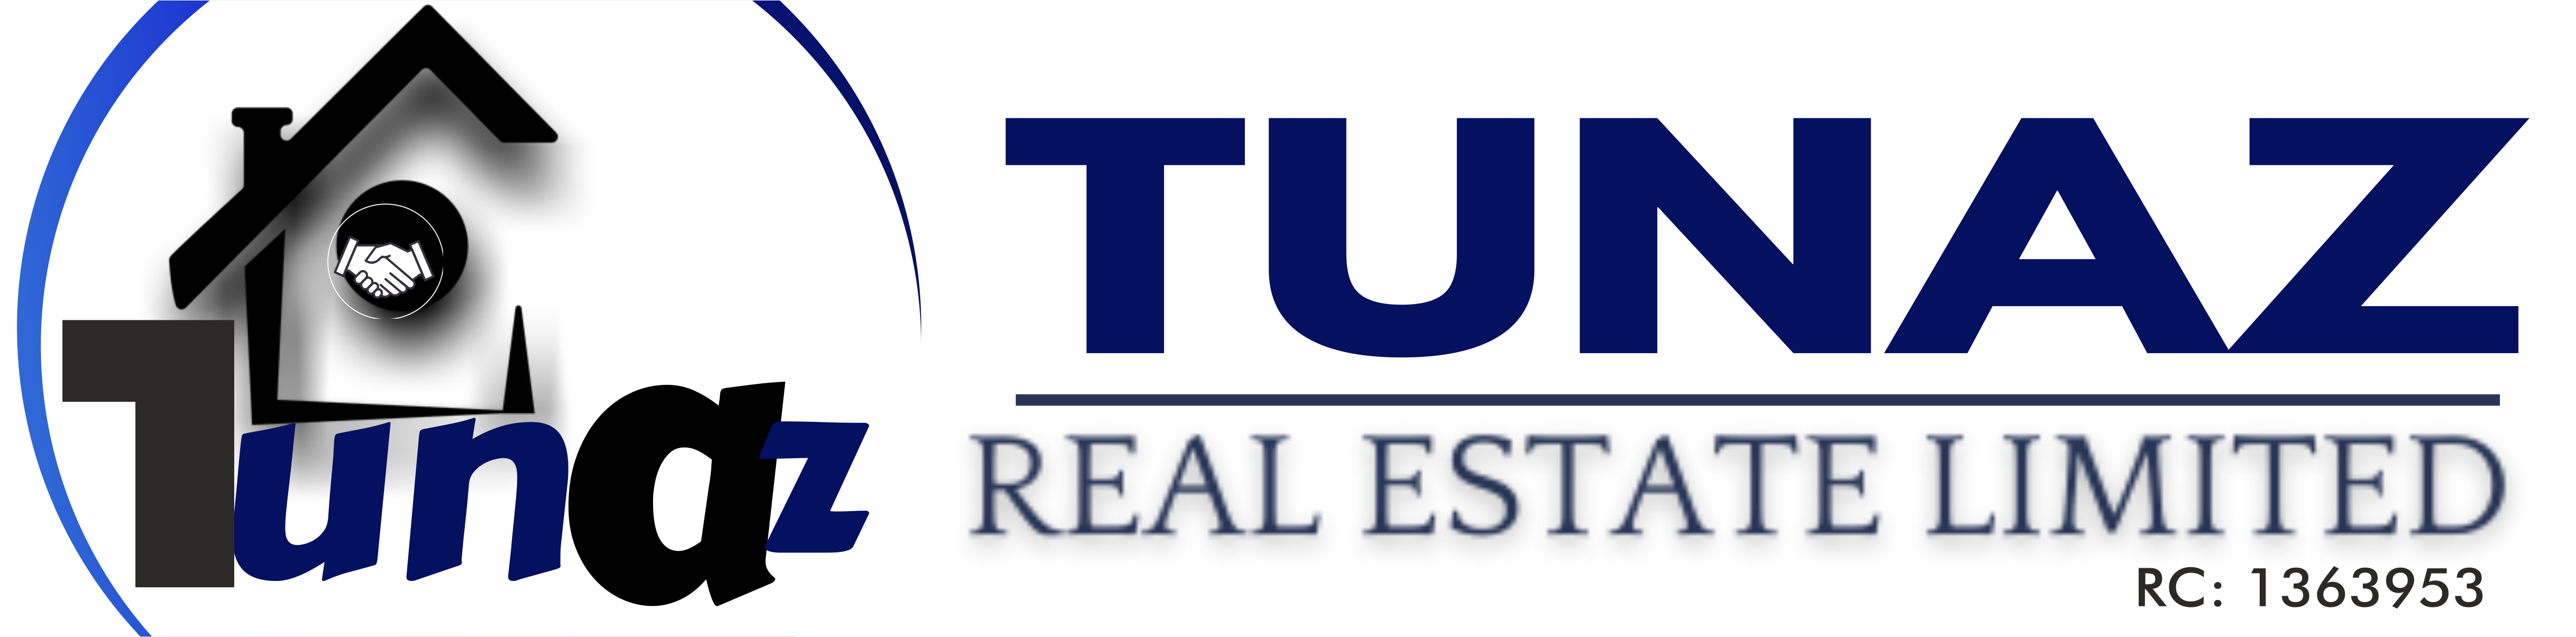 Tunaz Real Estate